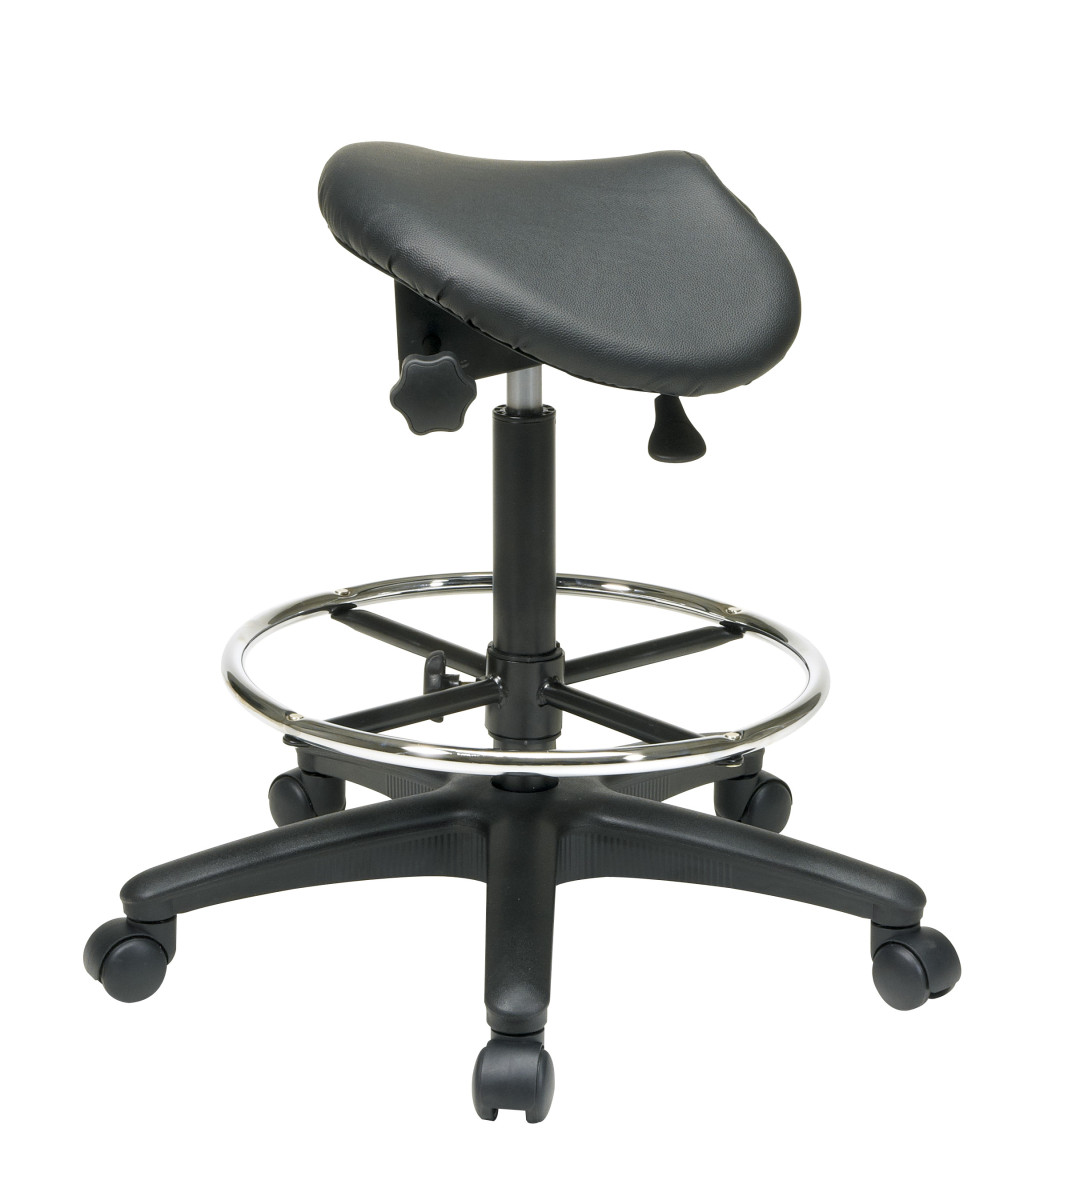 Backless Stool With Saddle Seat Dual Wheel Carpet Casters